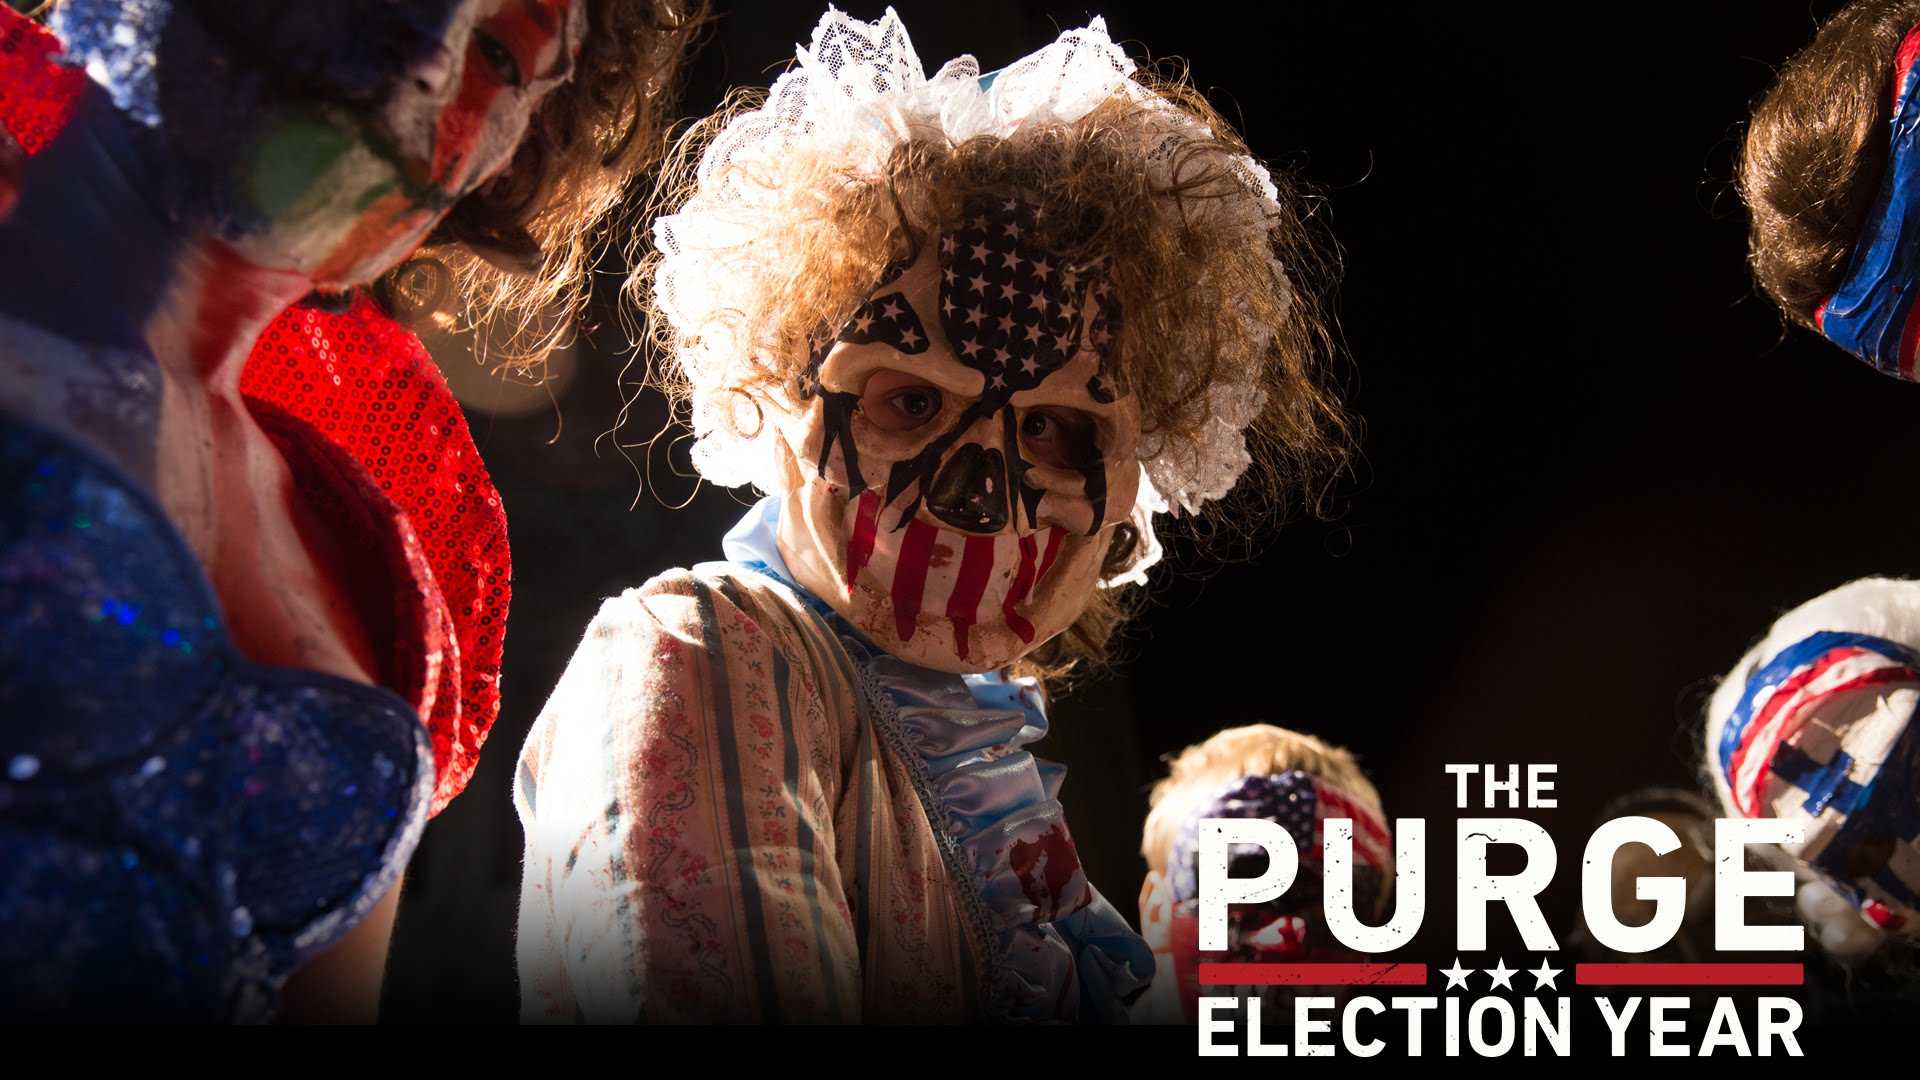 The Purge Election Year 2016, HD Movies, 4k Wallpapers